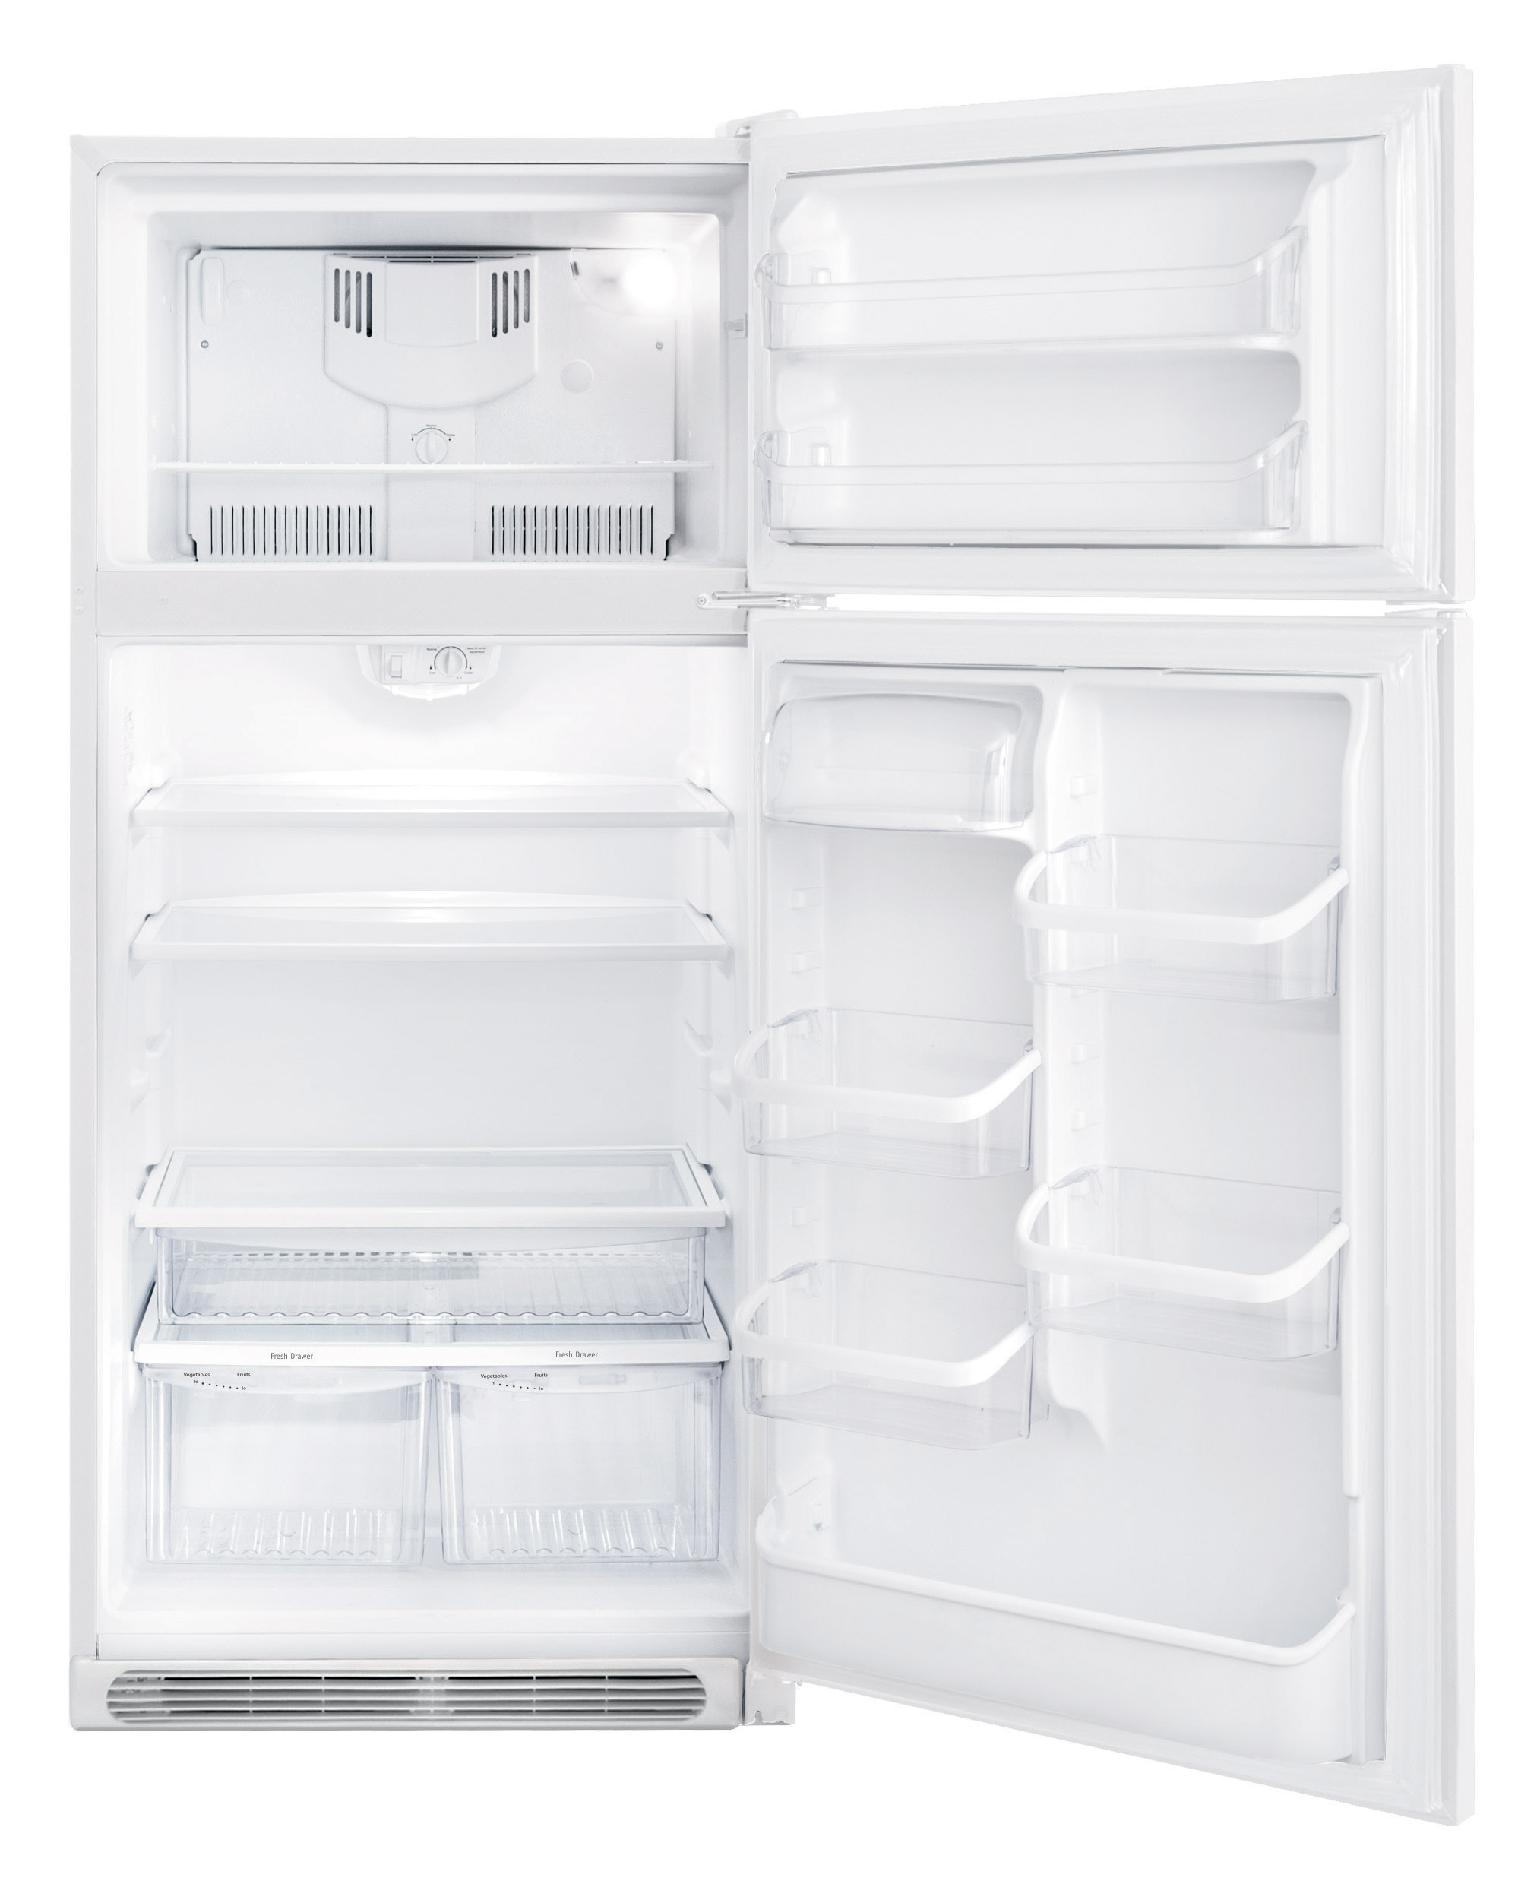 Frigidaire Gallery Gallery 18.3 cu. ft. Top-Freezer Refrigerator - Pearl White